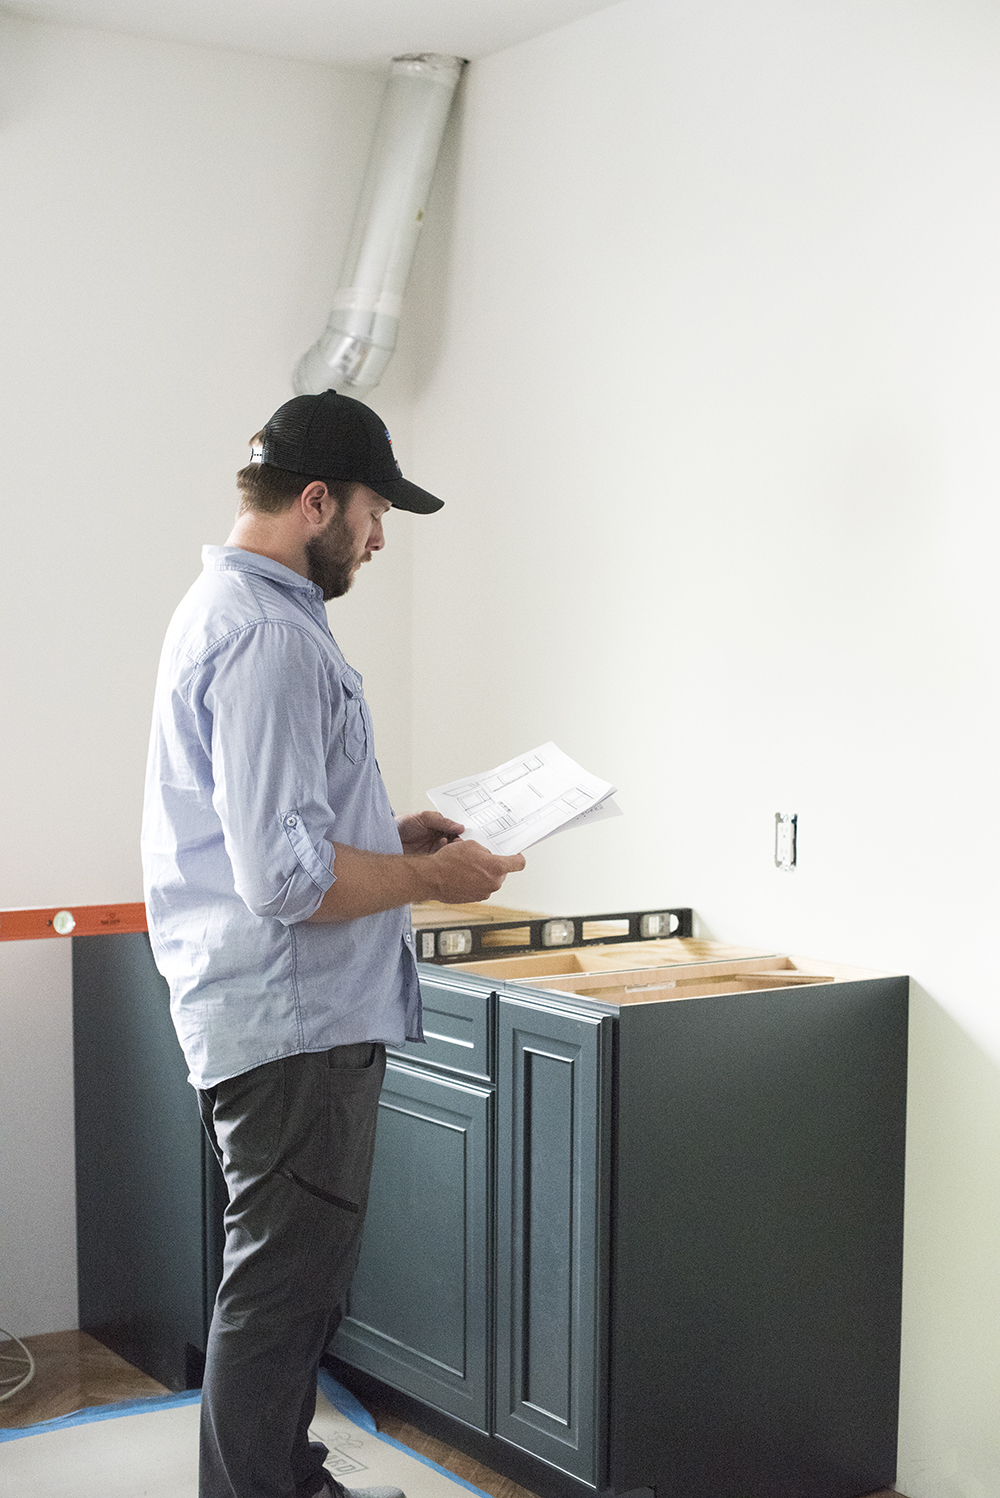 Tips for Finding, Hiring, & Managing Reliable Contractors - roomfortuesday.com